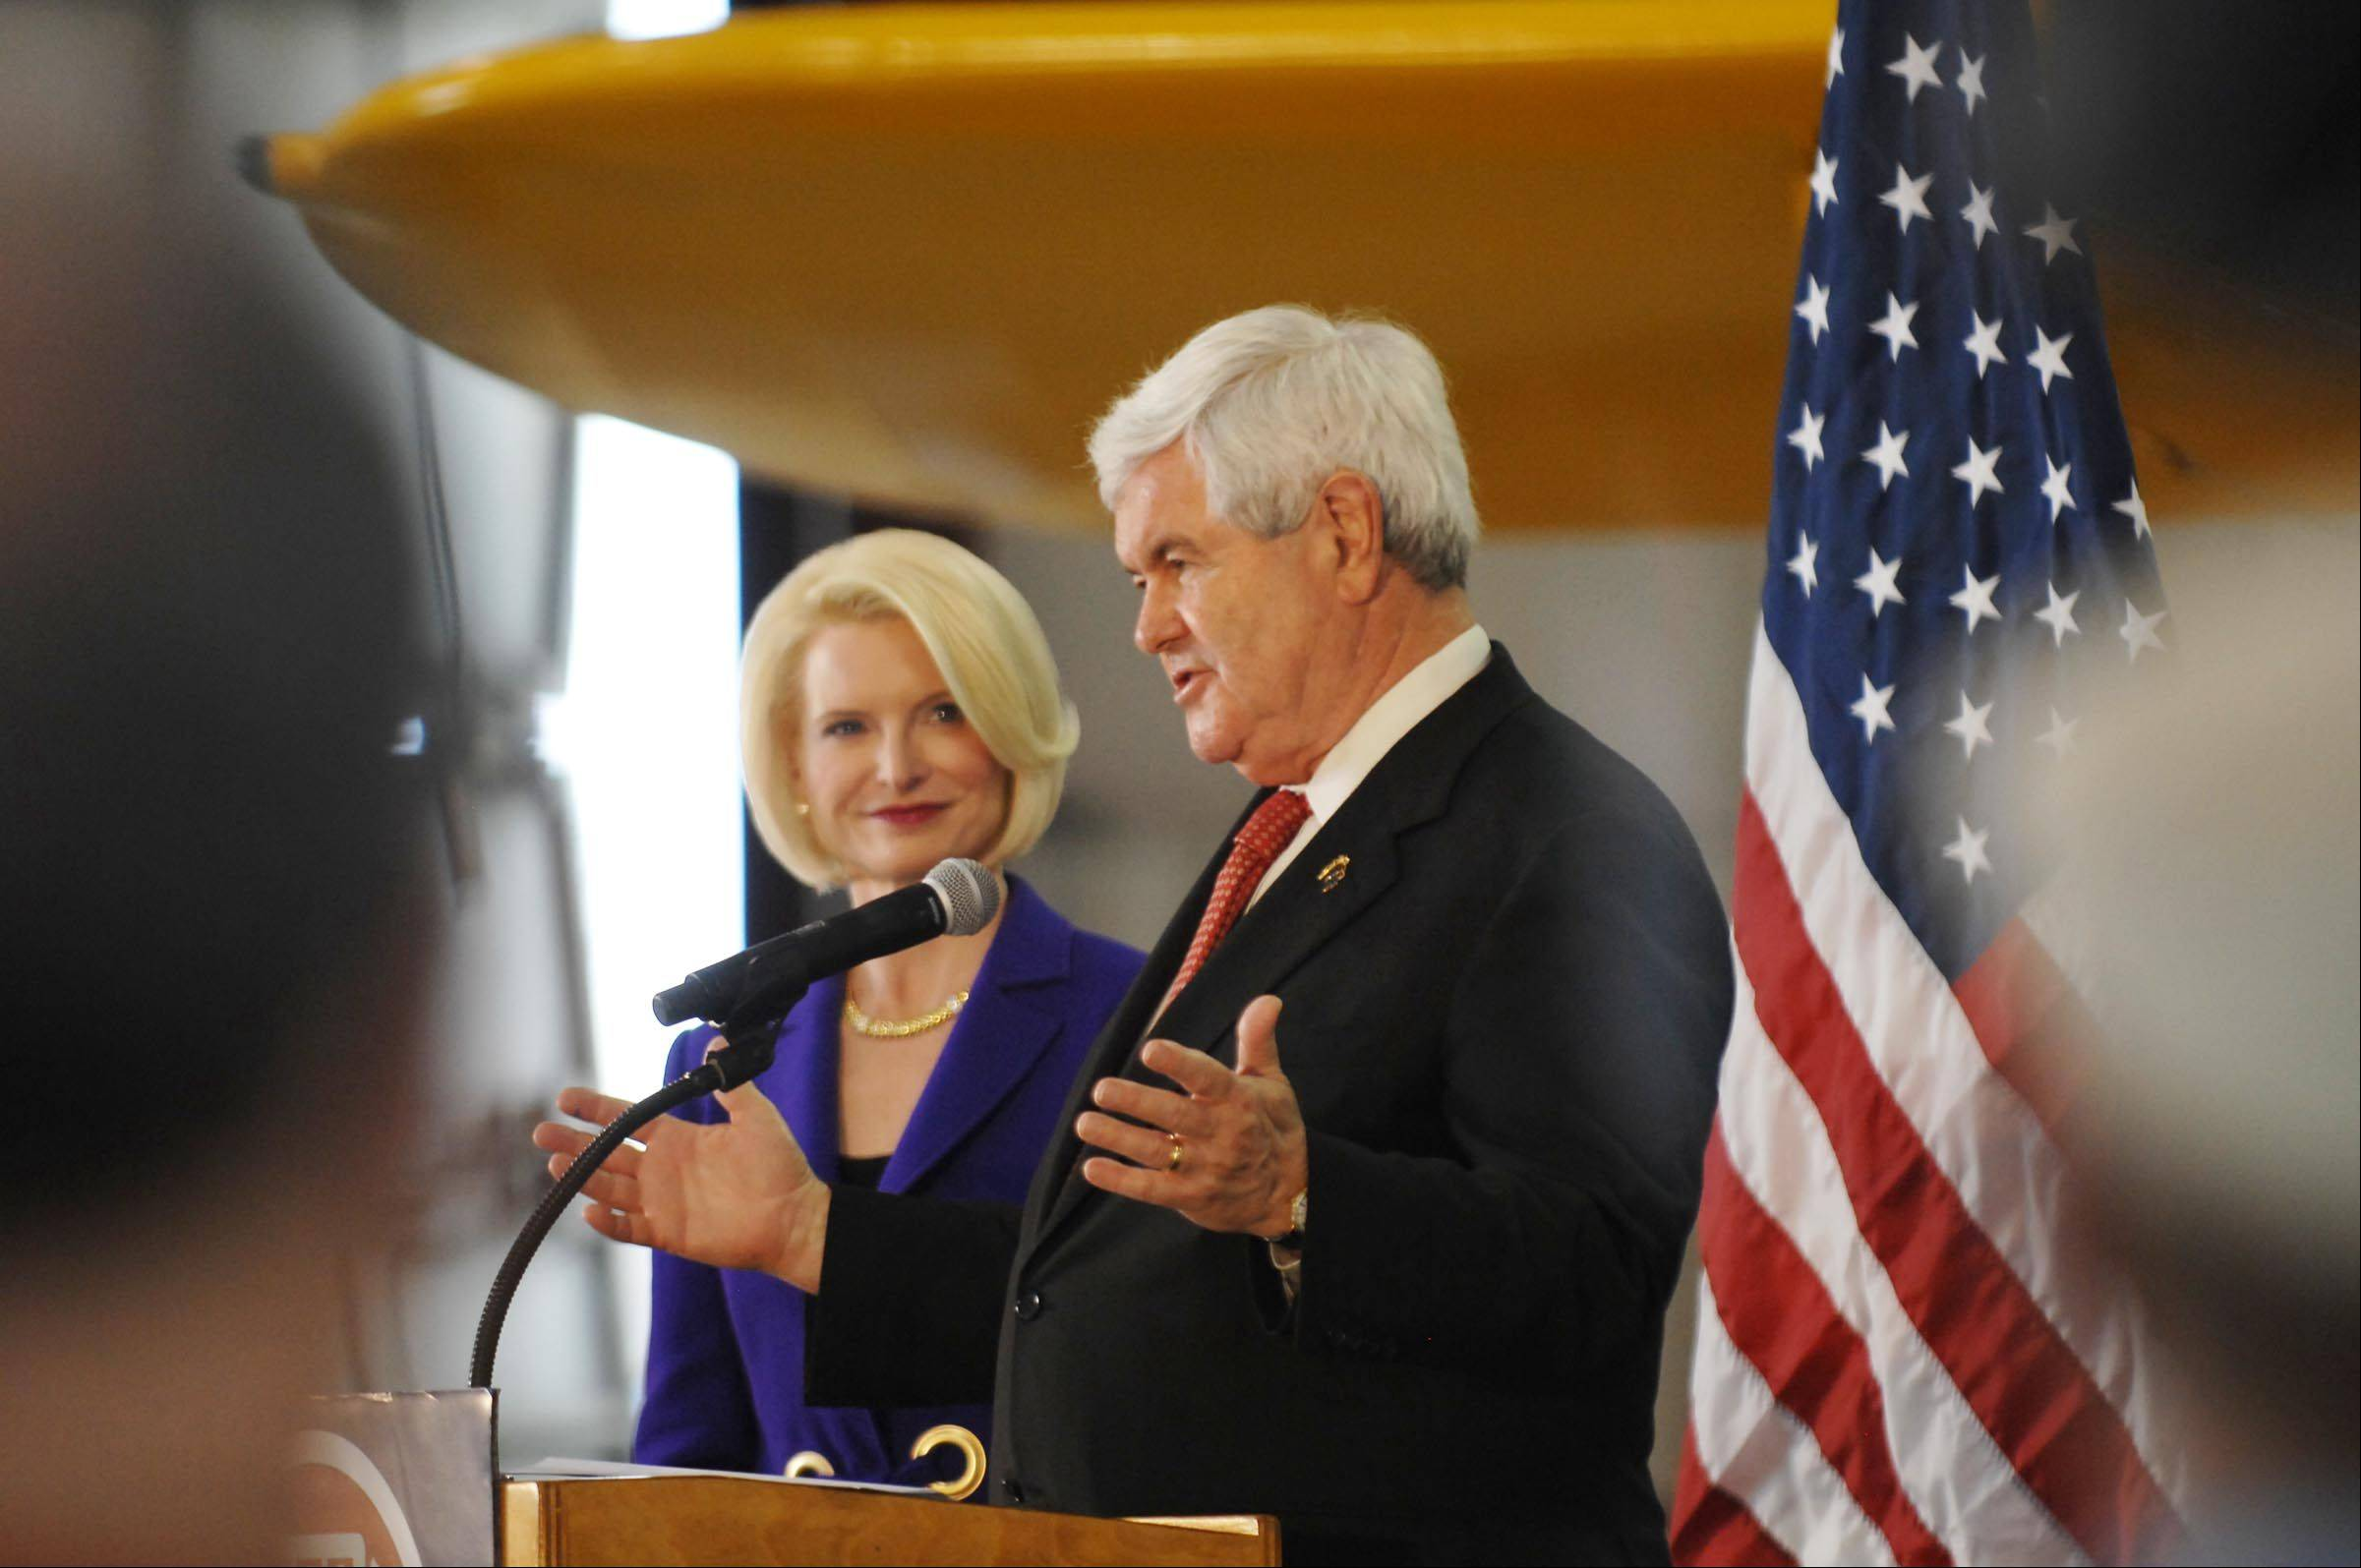 Newt Gingrich and his wife, Callista, will be signing copies of their books at Anderson's Bookshop in Downers Grove.